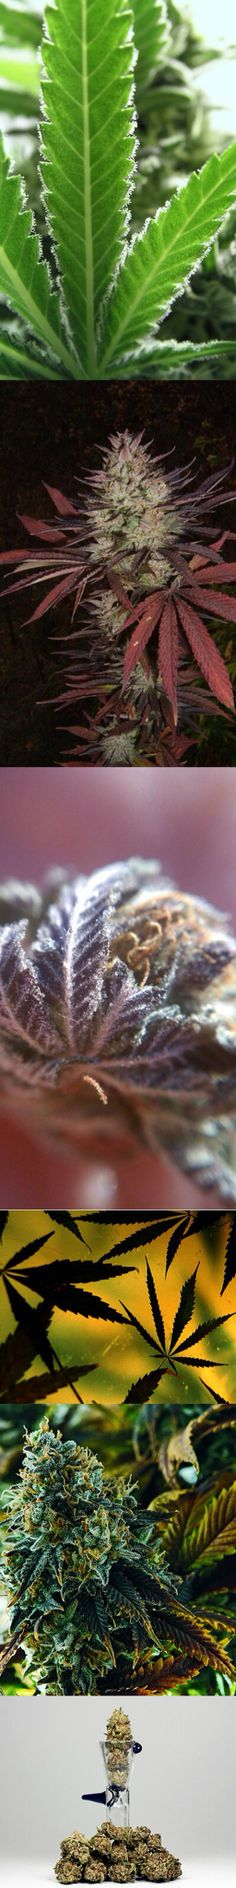 Different strains of beautiful Cannabis plant